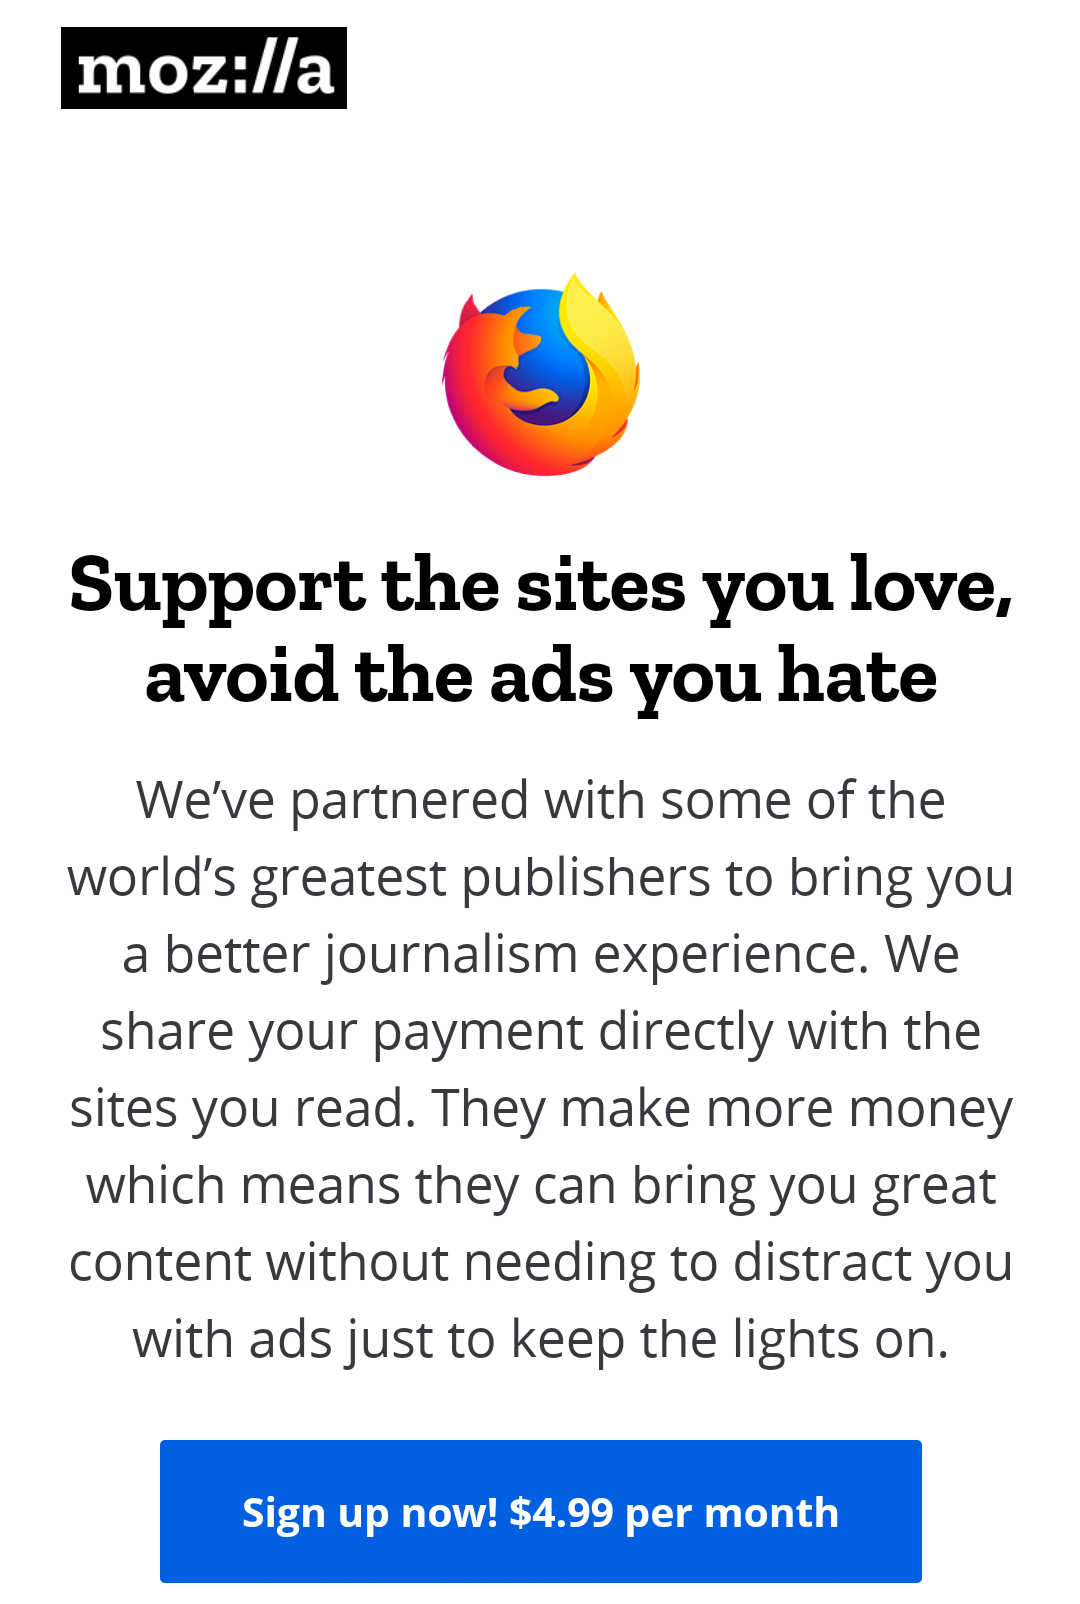 Mozilla starting service to provide ad free internet for